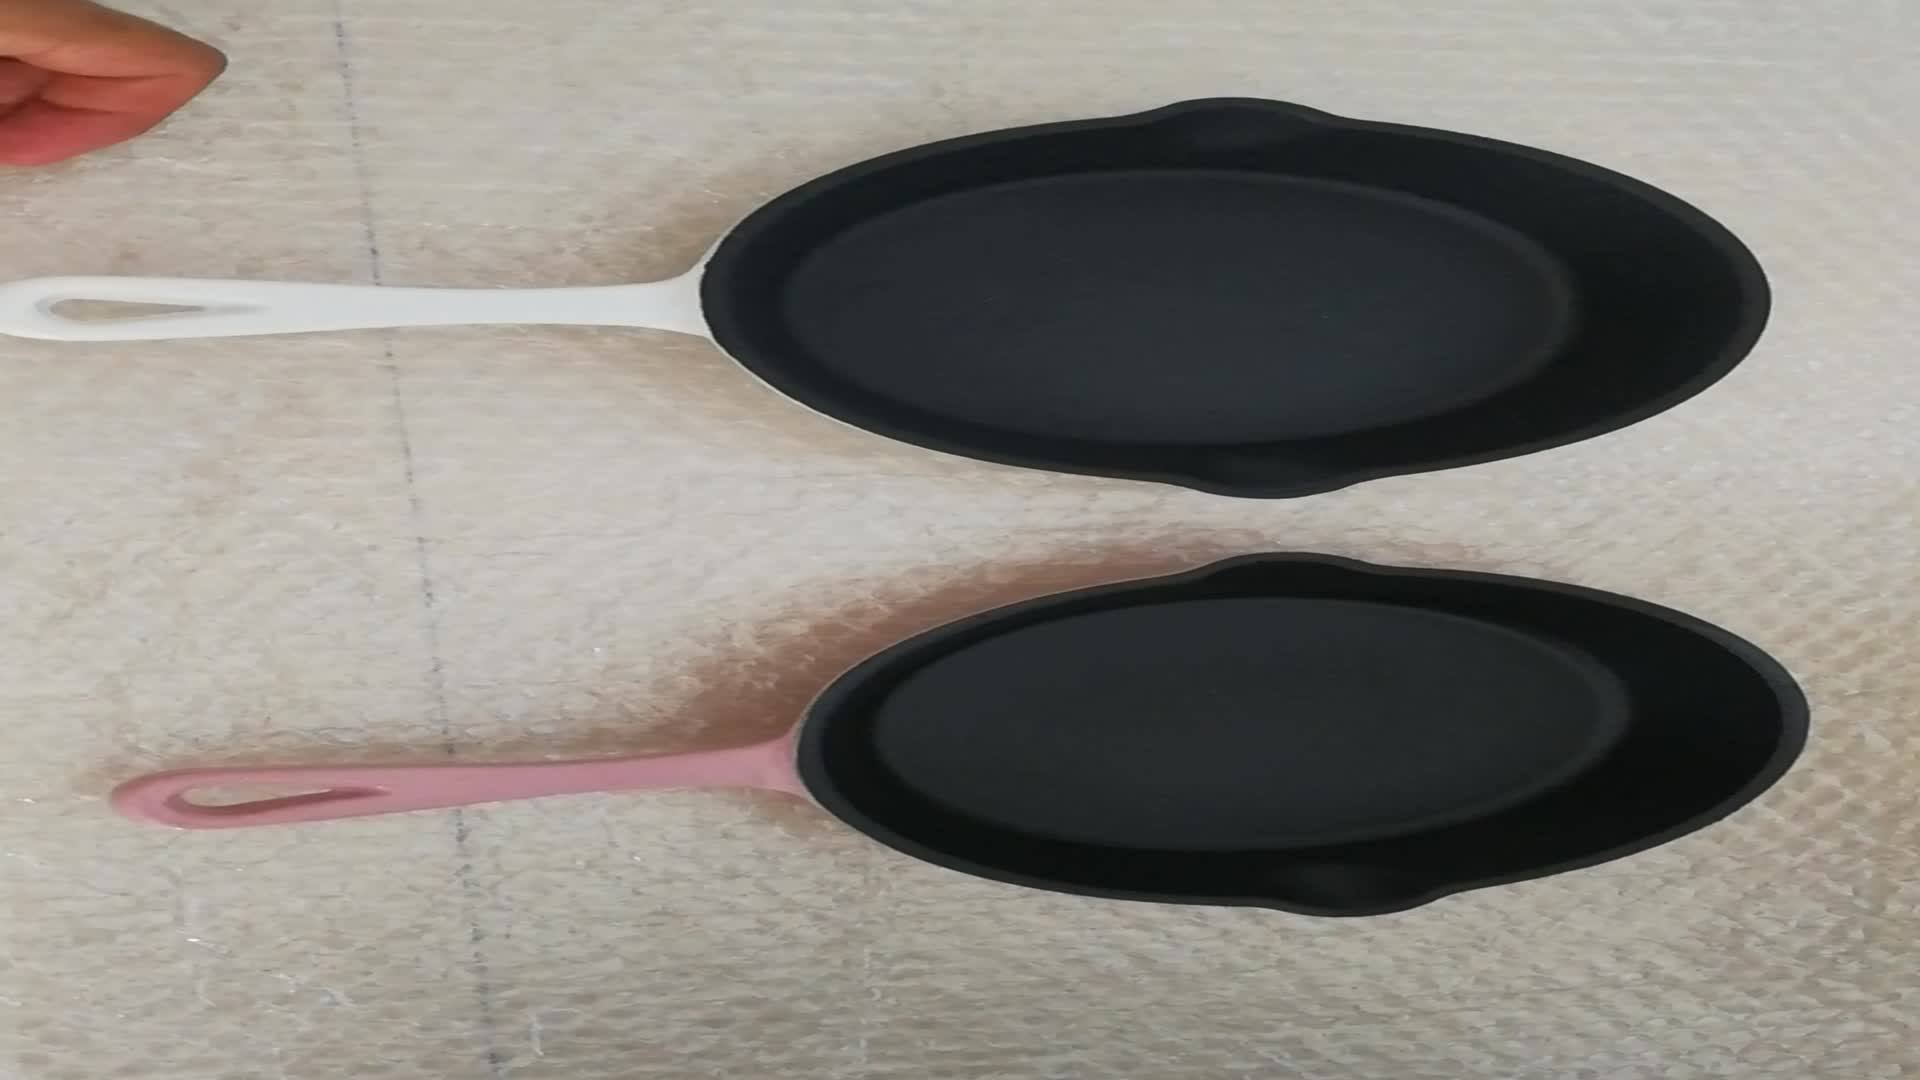 Enamel Cast Iron Skillet 10 inch Oven Safe Smooth Surface Fry Pan. Perfect for Steak, Fajitas, Eggs